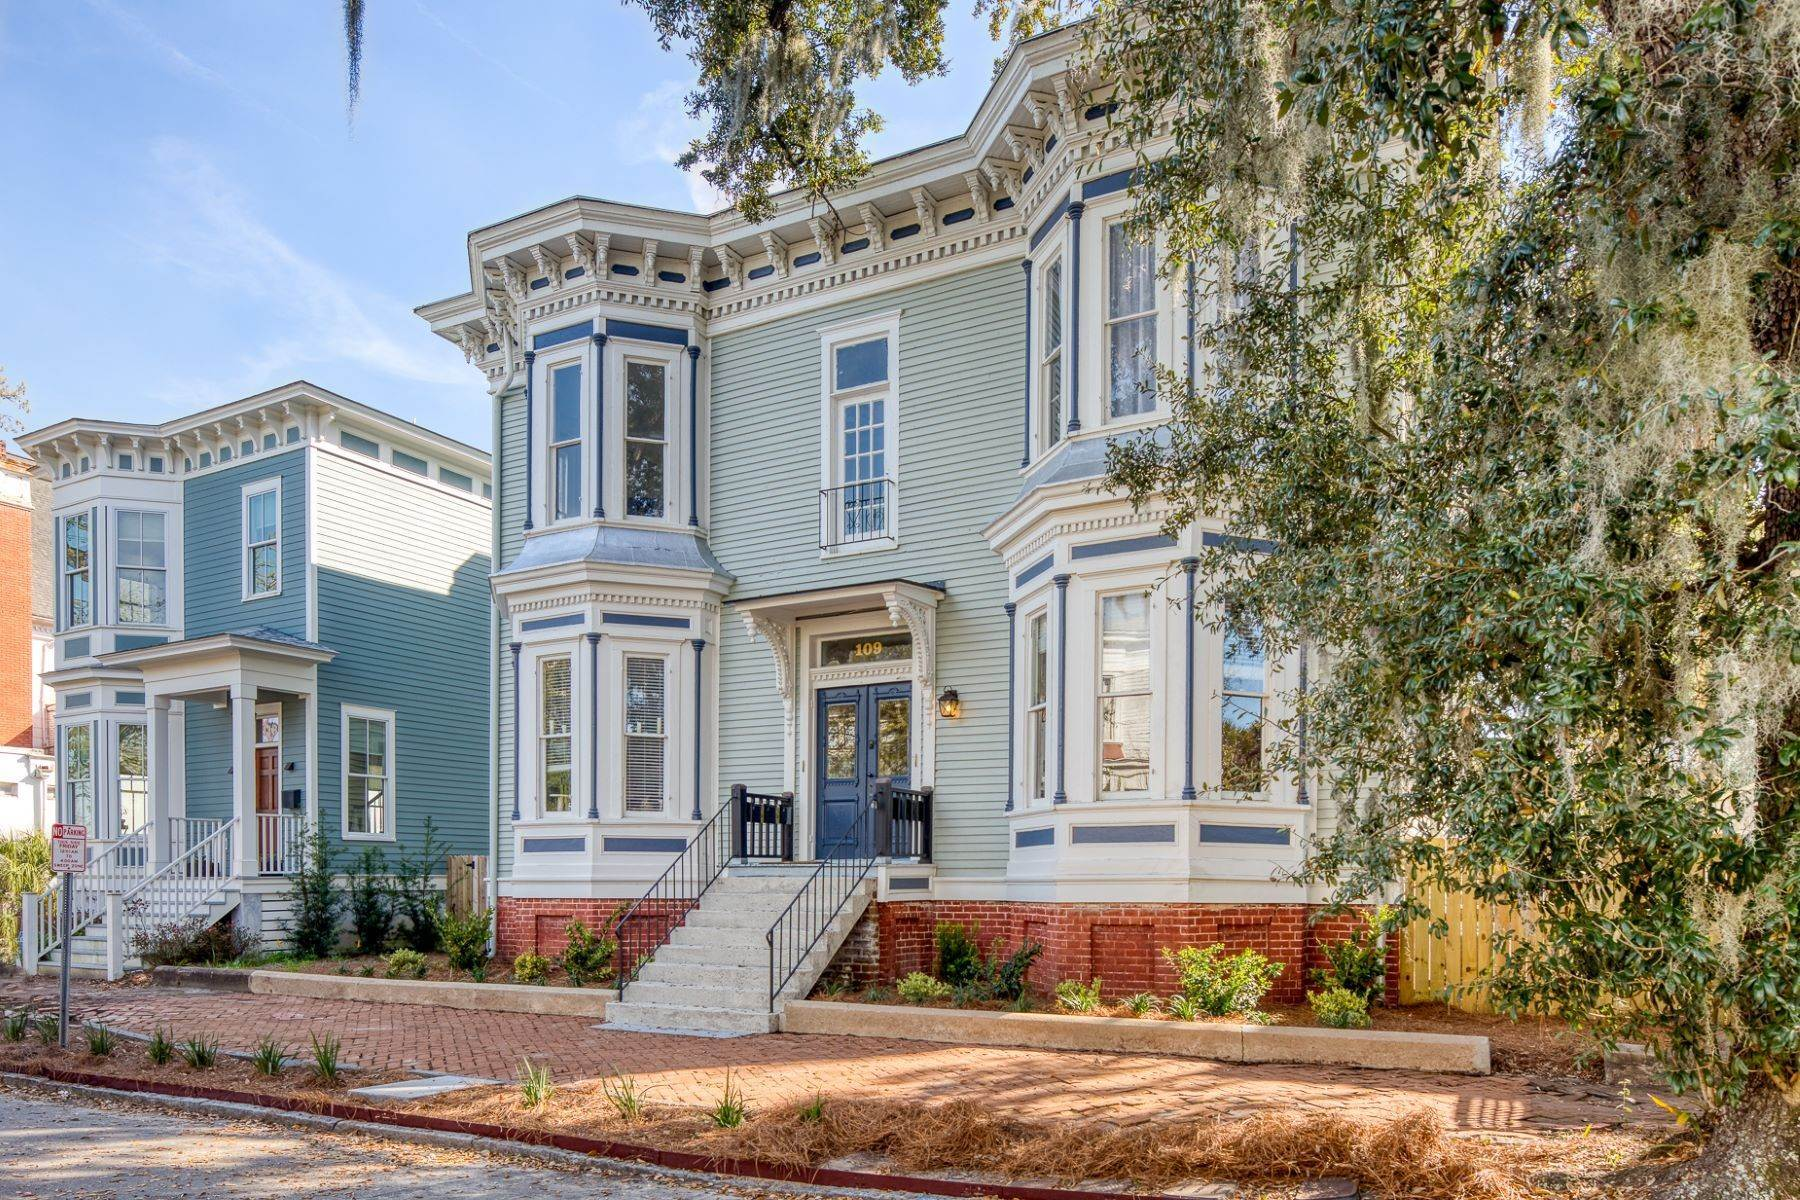 2. Property for Sale at Stunning Six Unit Victorian Apartment Building Near Forsyth Park 109 E Duffy Street Savannah, Georgia 31401 United States